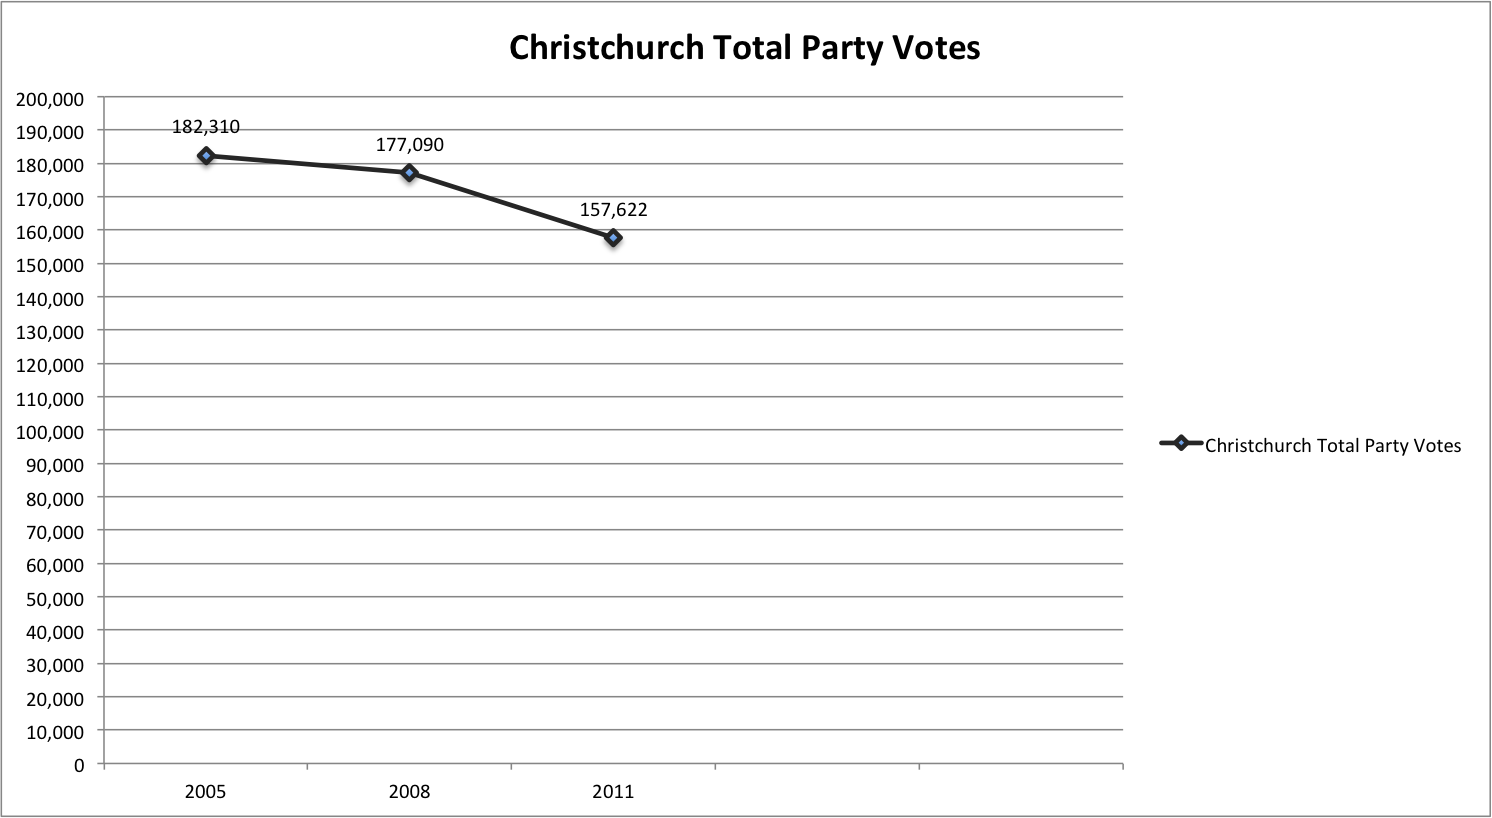 Christchurch Total Party Votes